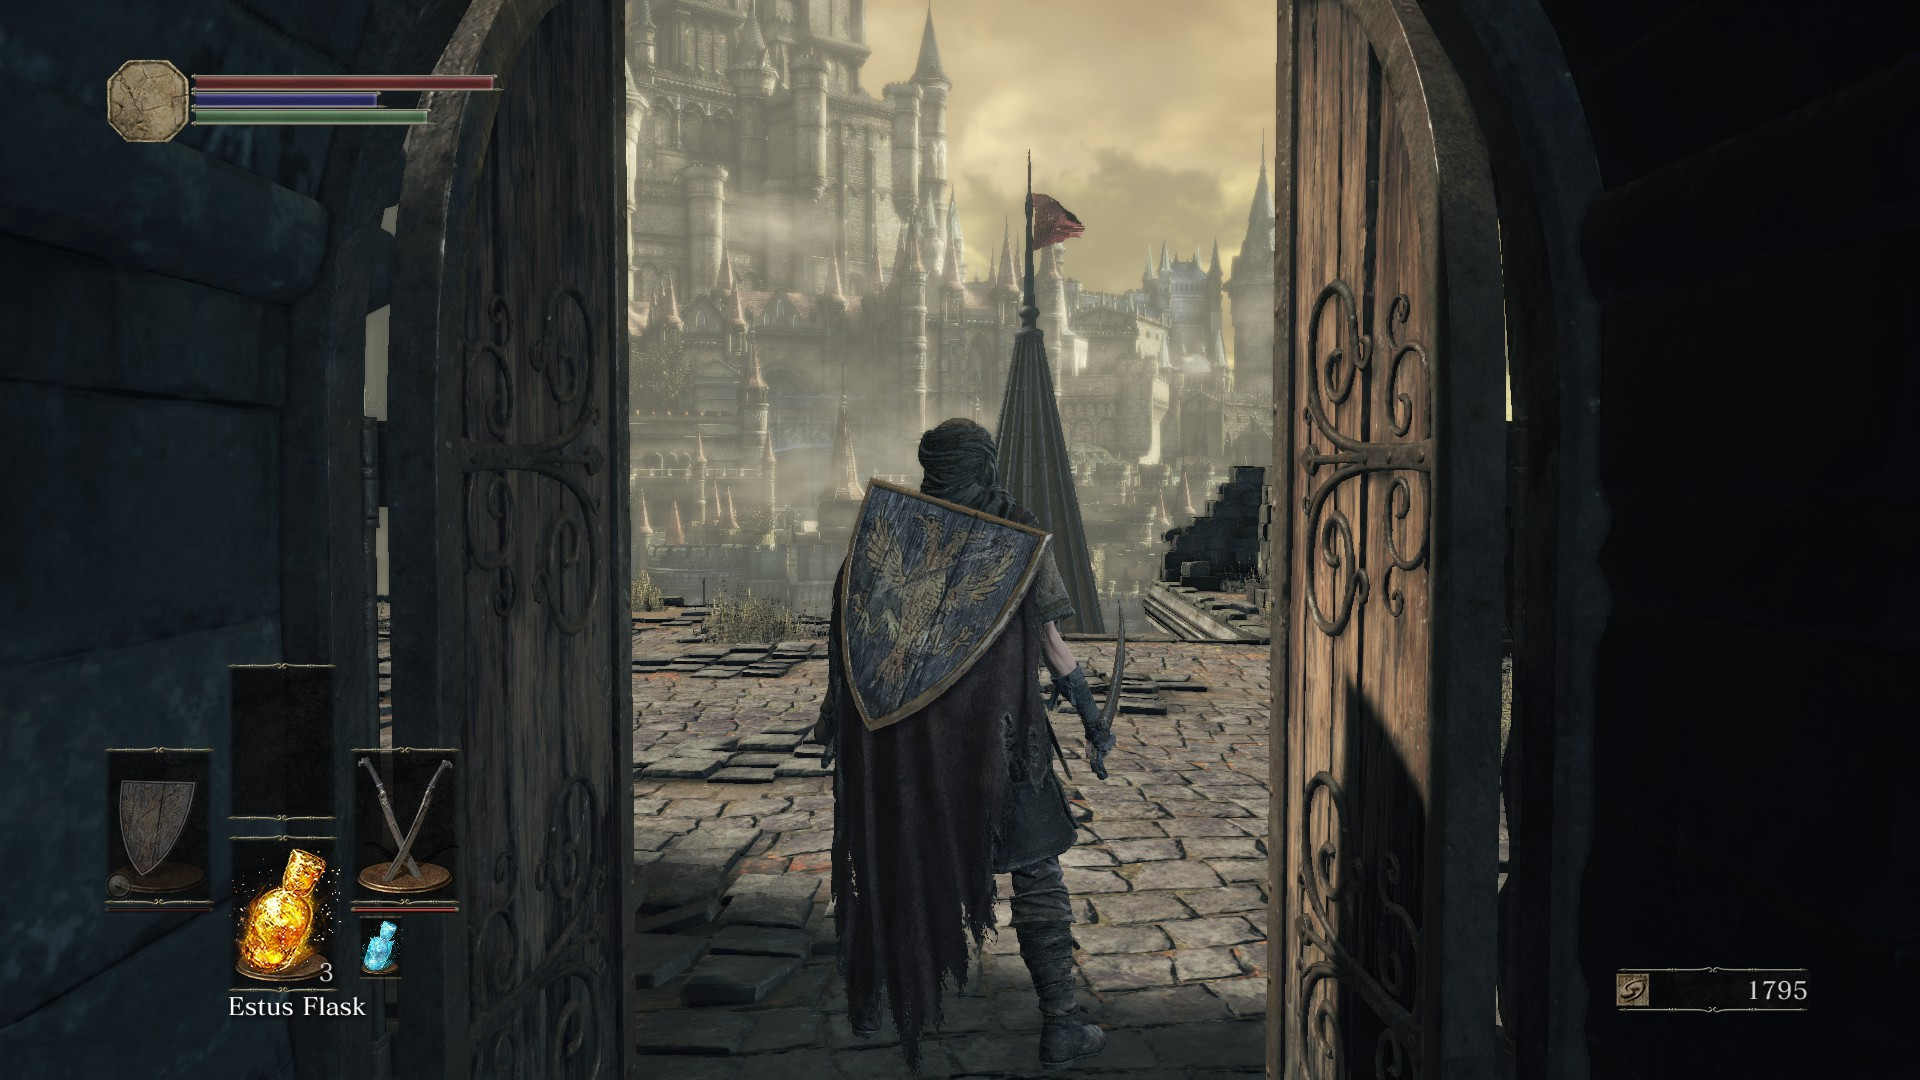 Betrayal of Fire: The Problem with Time, Space, and Lore in Dark Souls 3 |  by Untimely | Medium